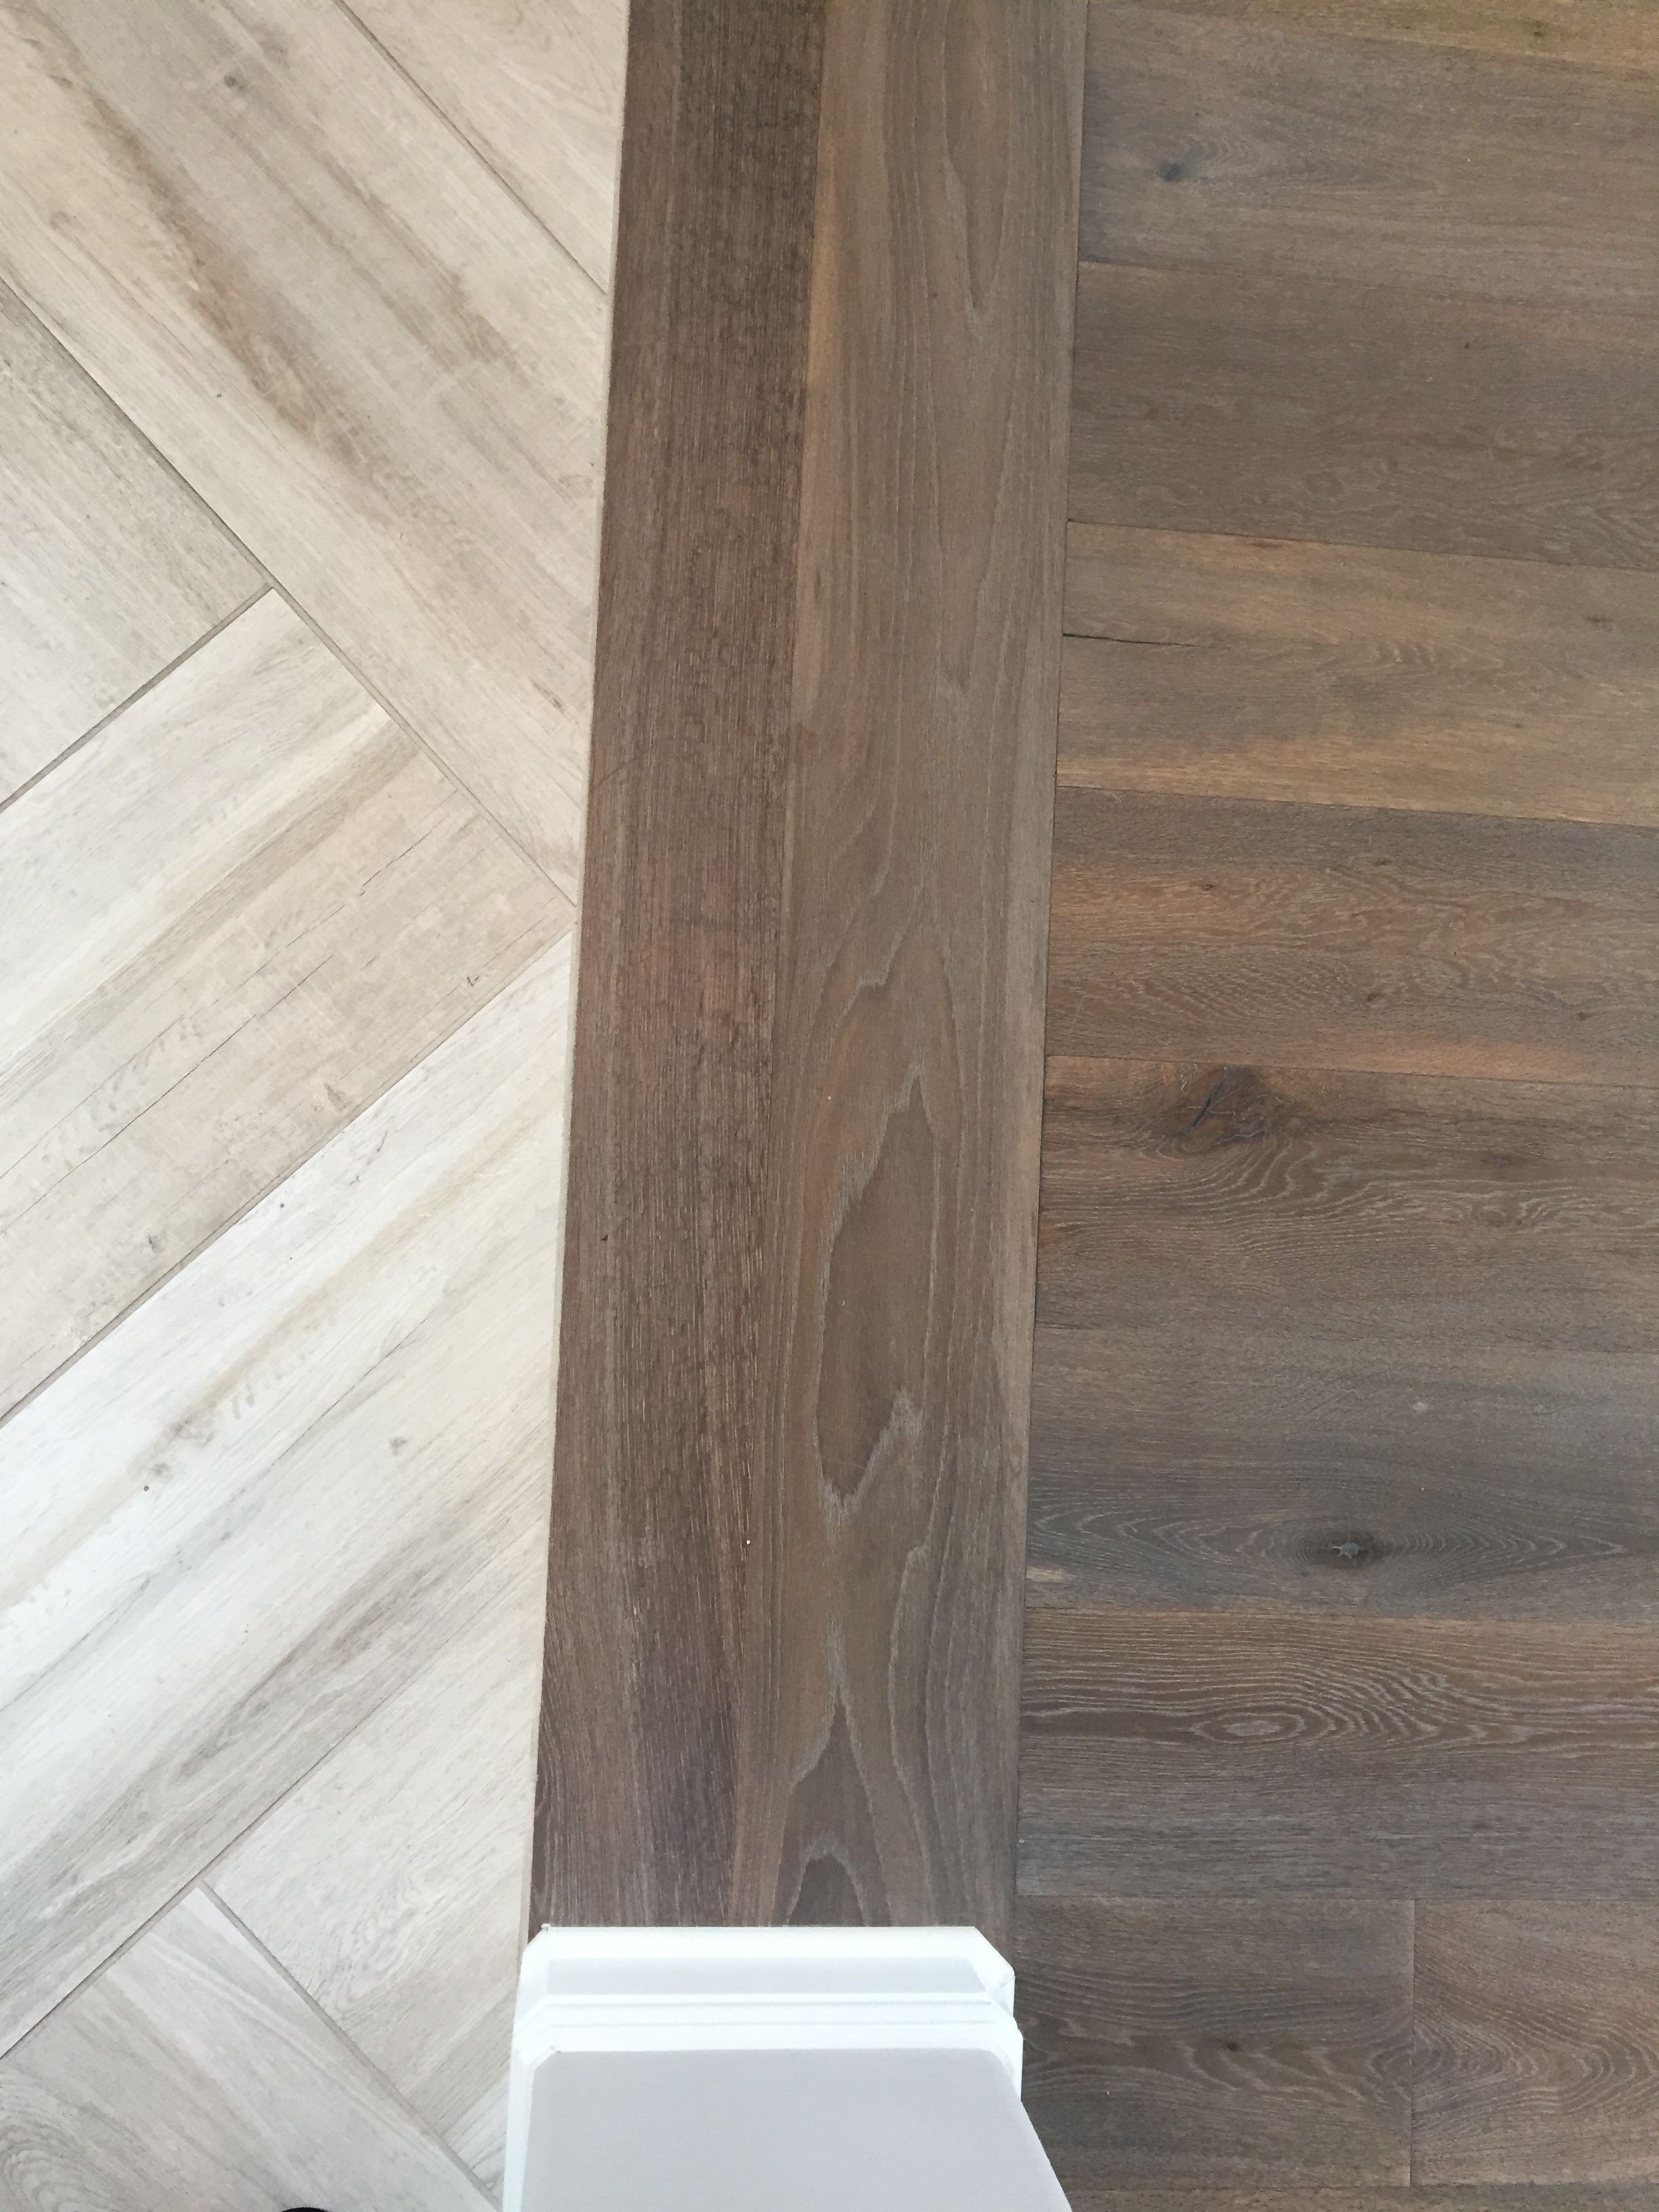 Sanding Screens for Hardwood Floors Of Floor Transition Laminate to Herringbone Tile Pattern Model Throughout Floor Transition Laminate to Herringbone Tile Pattern Herringbone Tile Pattern Herringbone Wood Floor